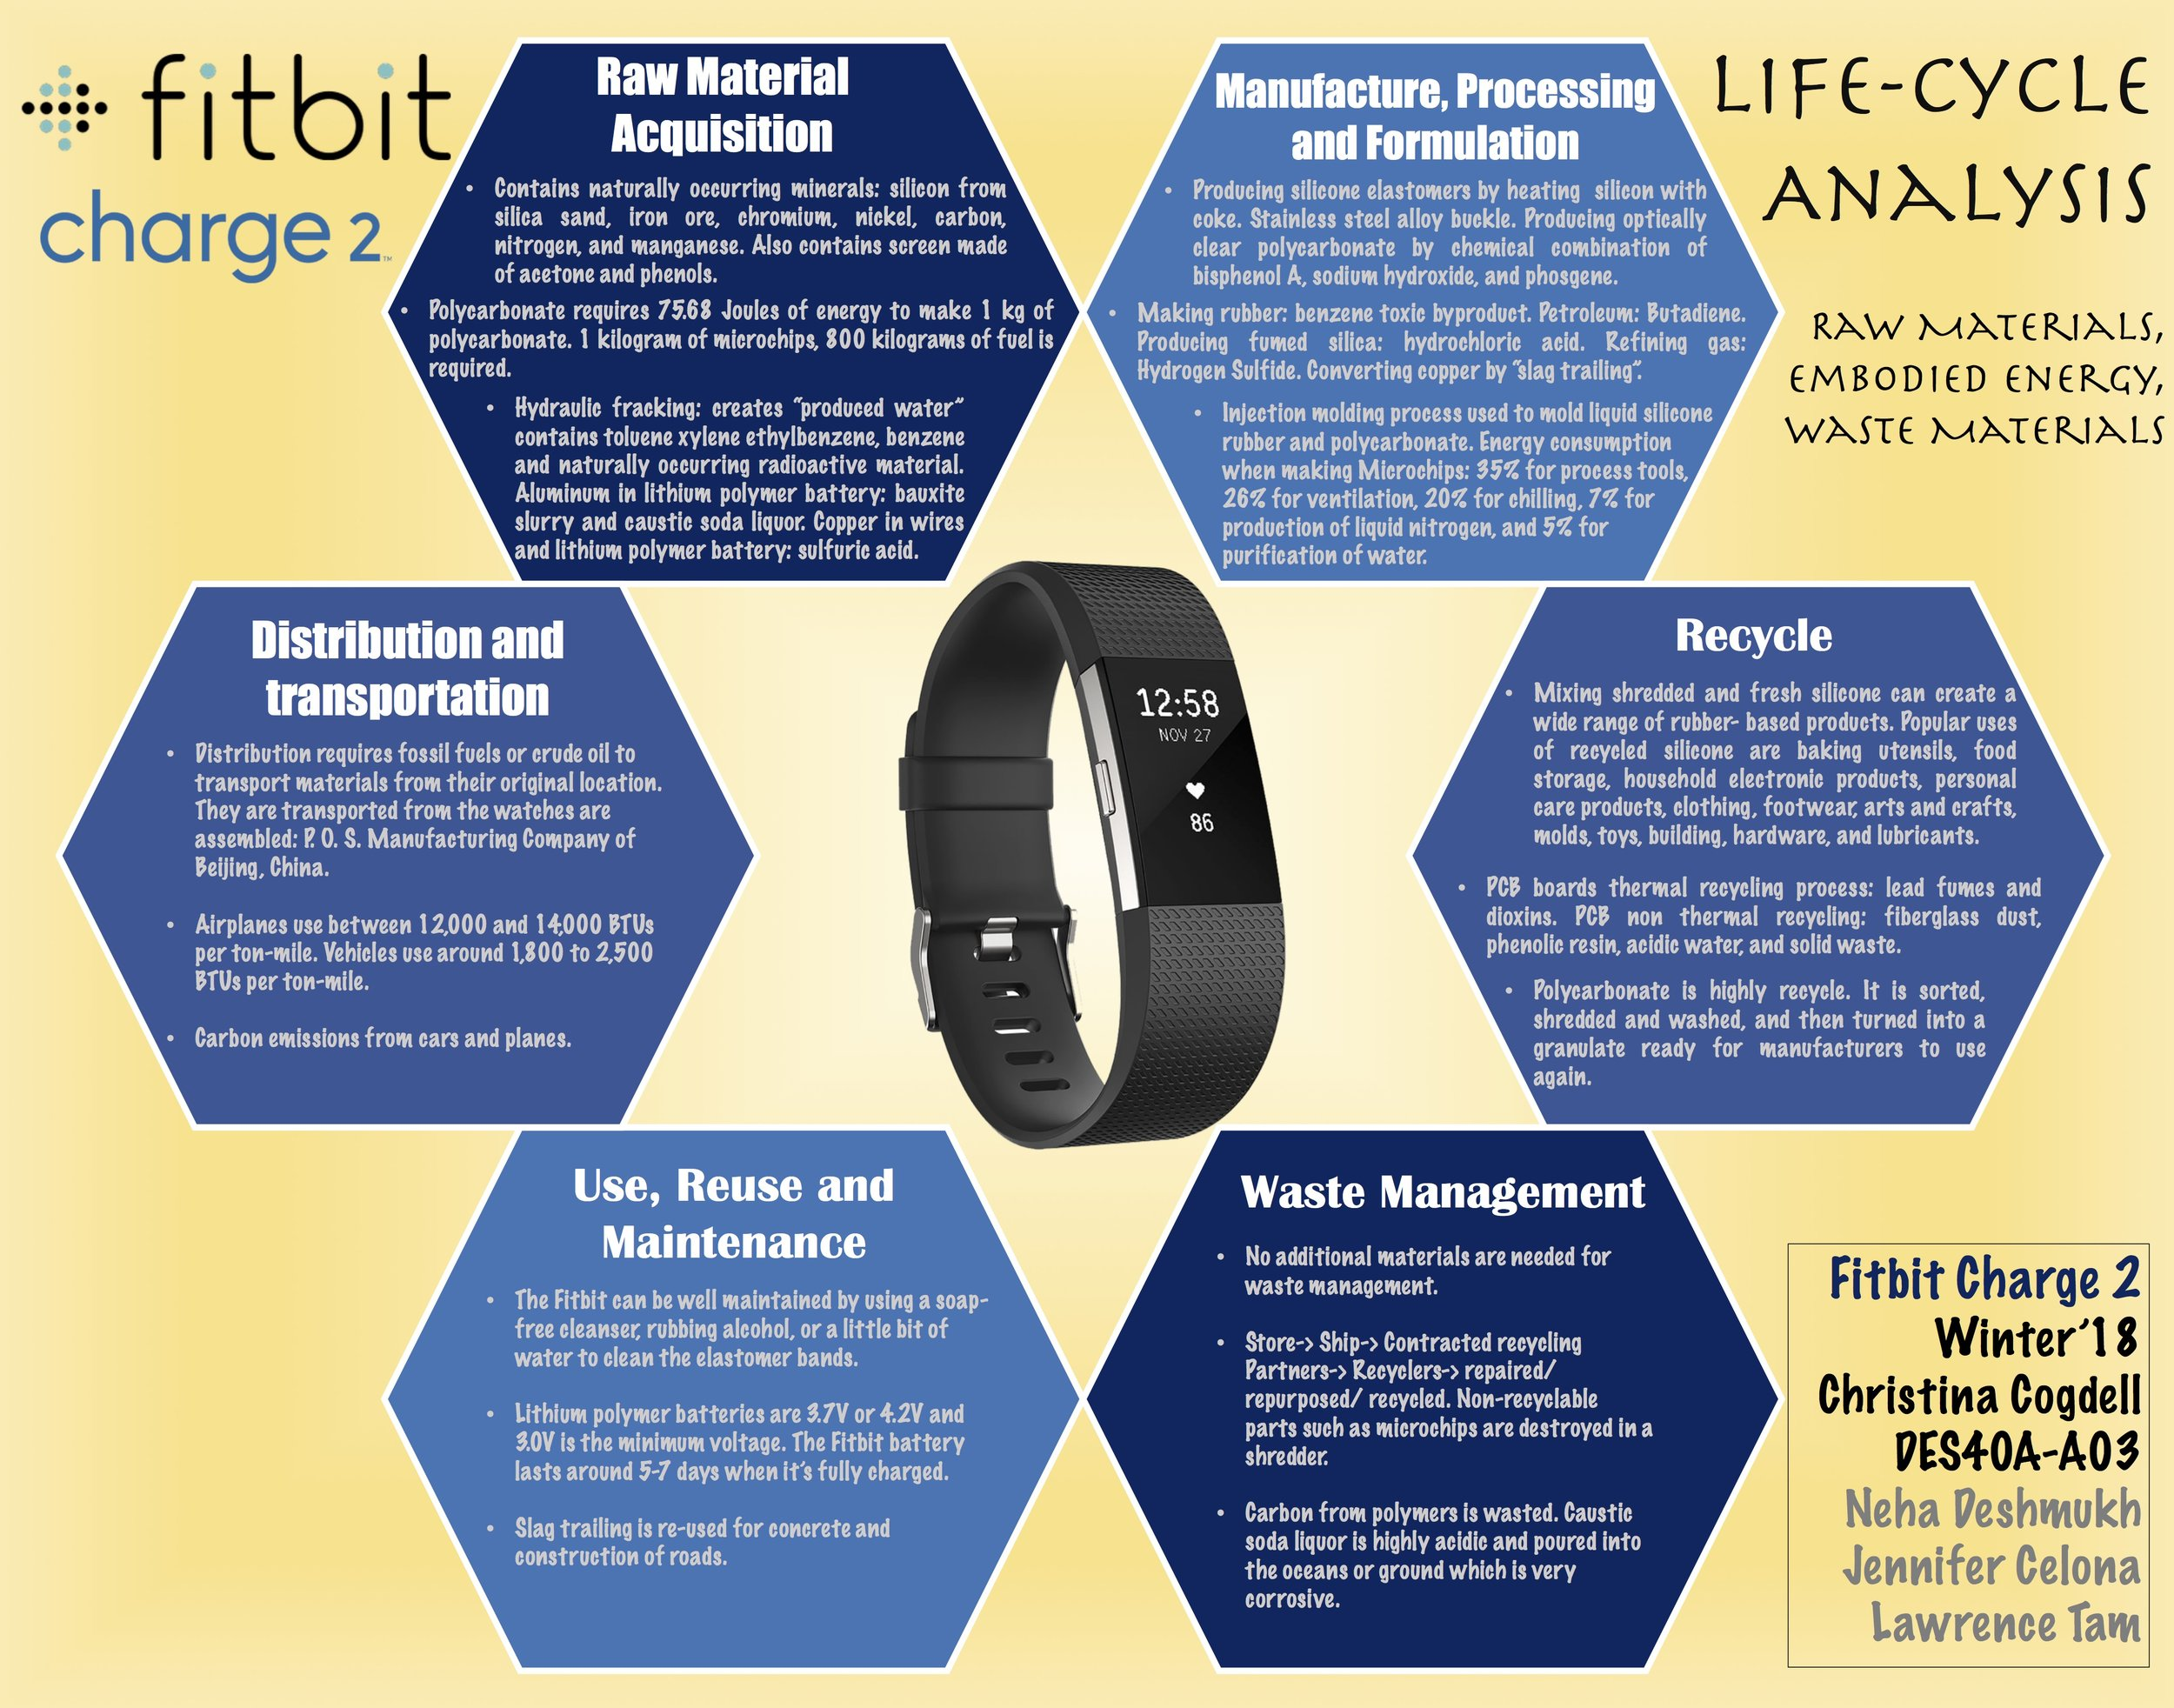 Fitbit Charge 2 Life Cycle